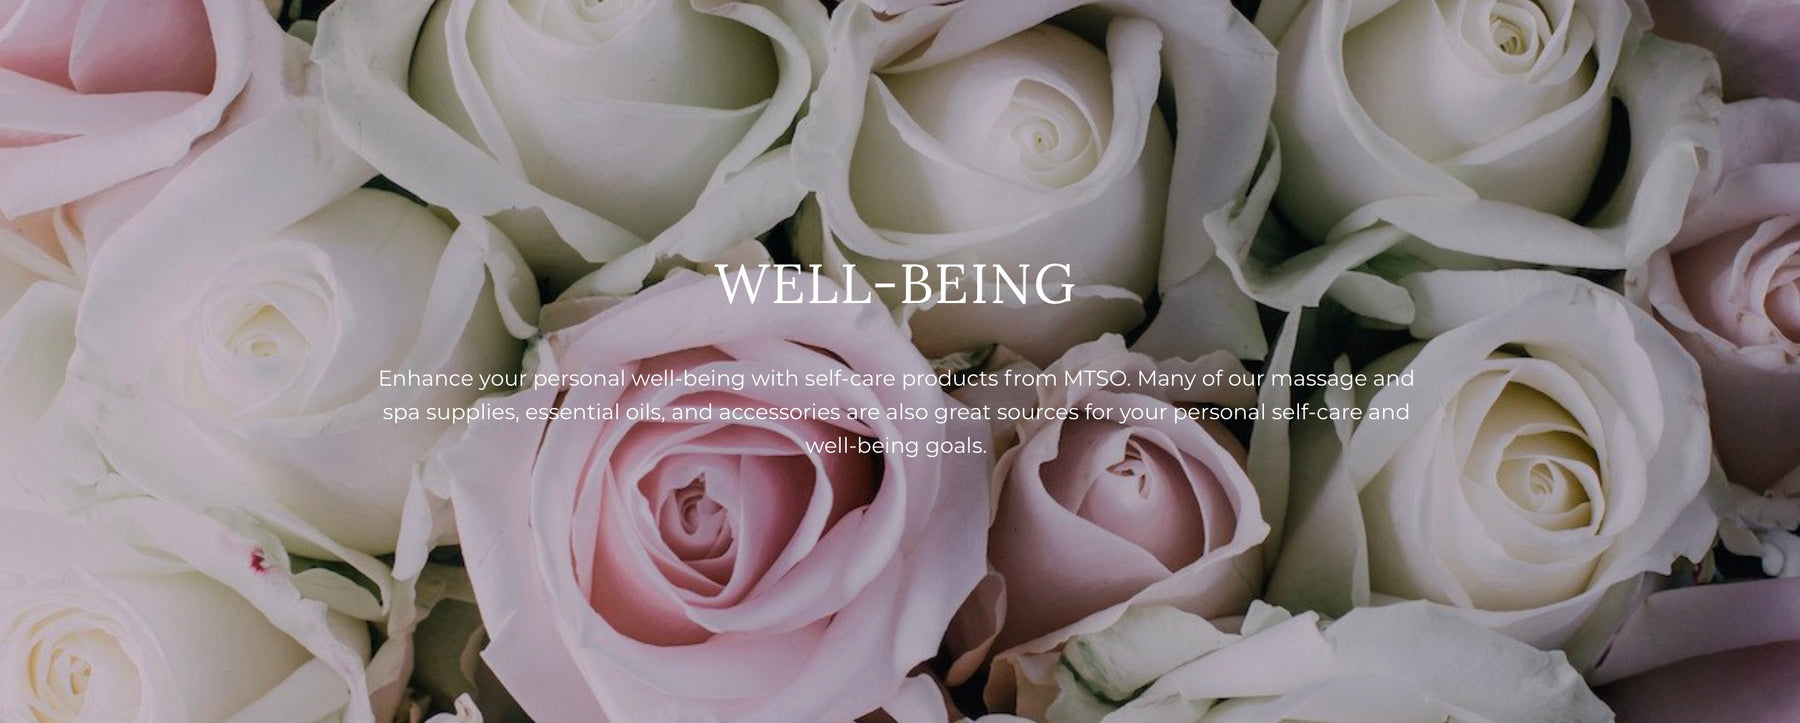 Well-Being Products for Self-Care